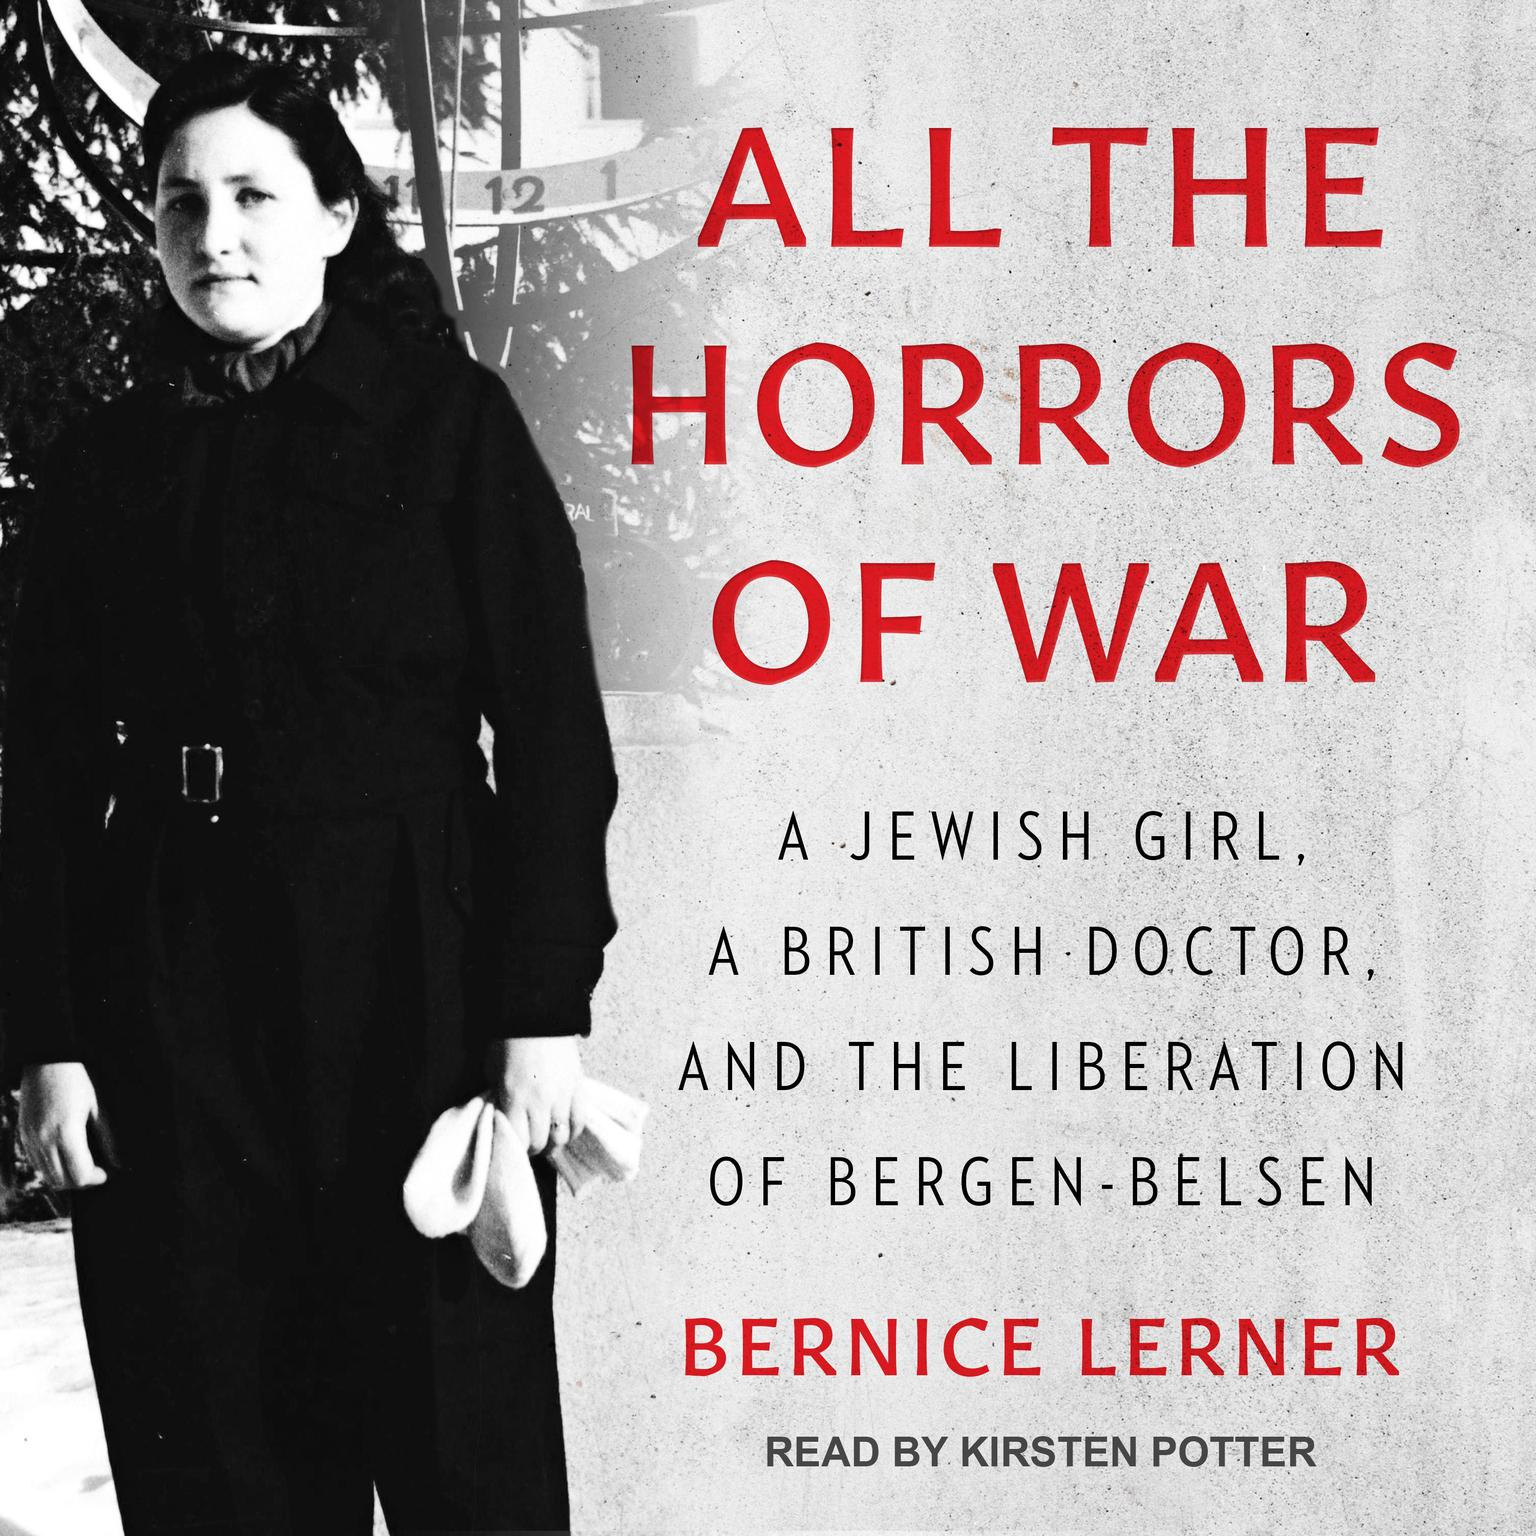 All the Horrors of War: A Jewish Girl, a British Doctor, and the Liberation of Bergen-Belsen Audiobook, by Bernice Lerner